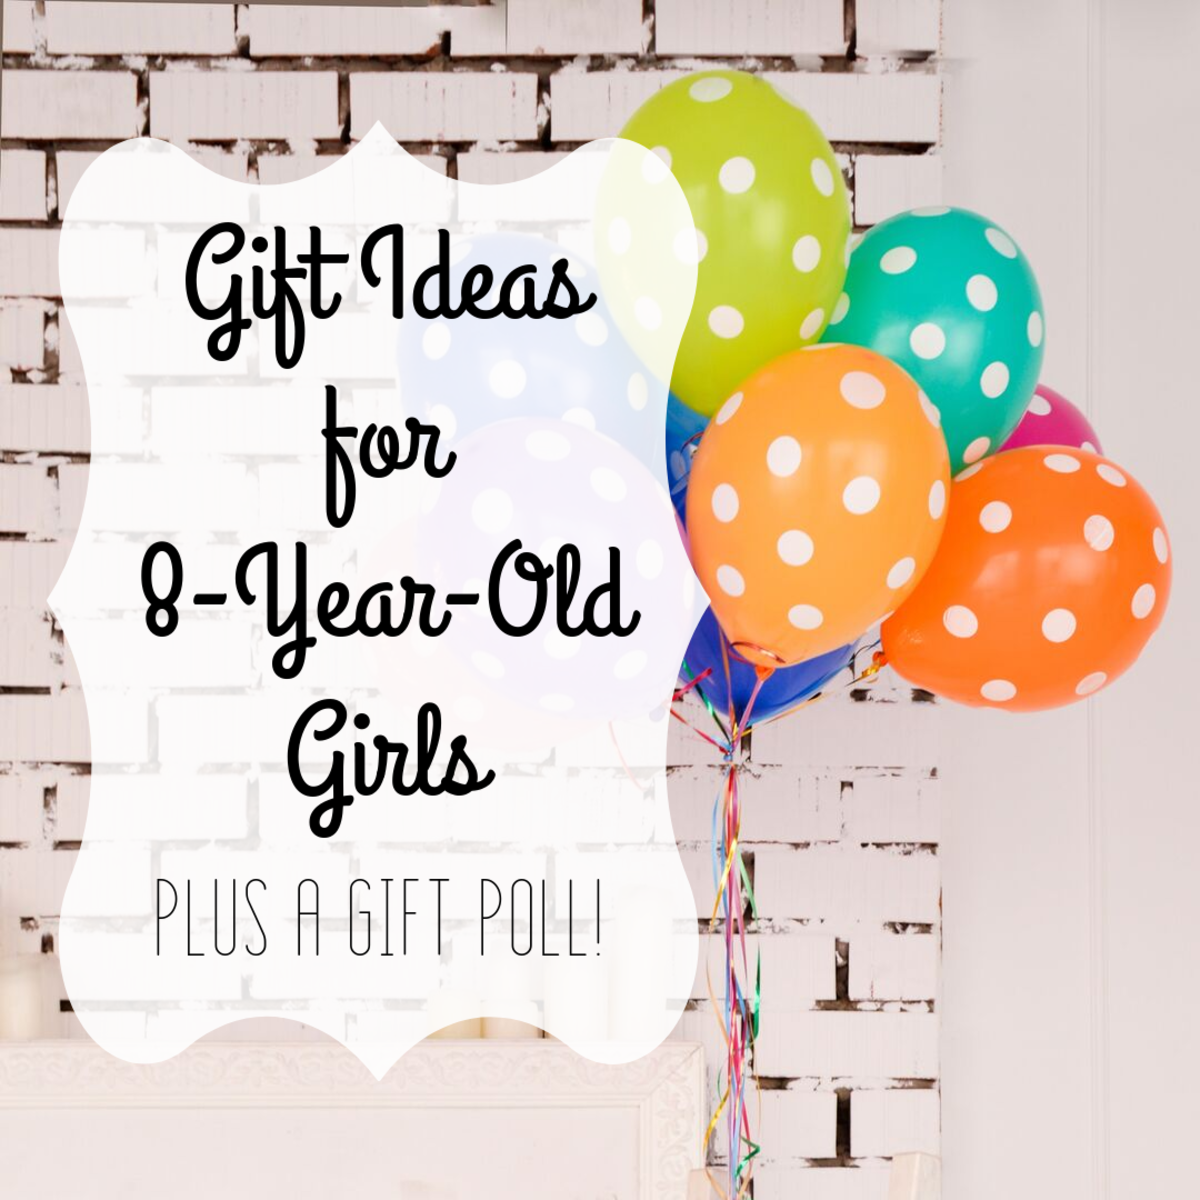 See some of the most popular gift ideas for 8-year-old girls over the past few years, and vote on your favorite gift.